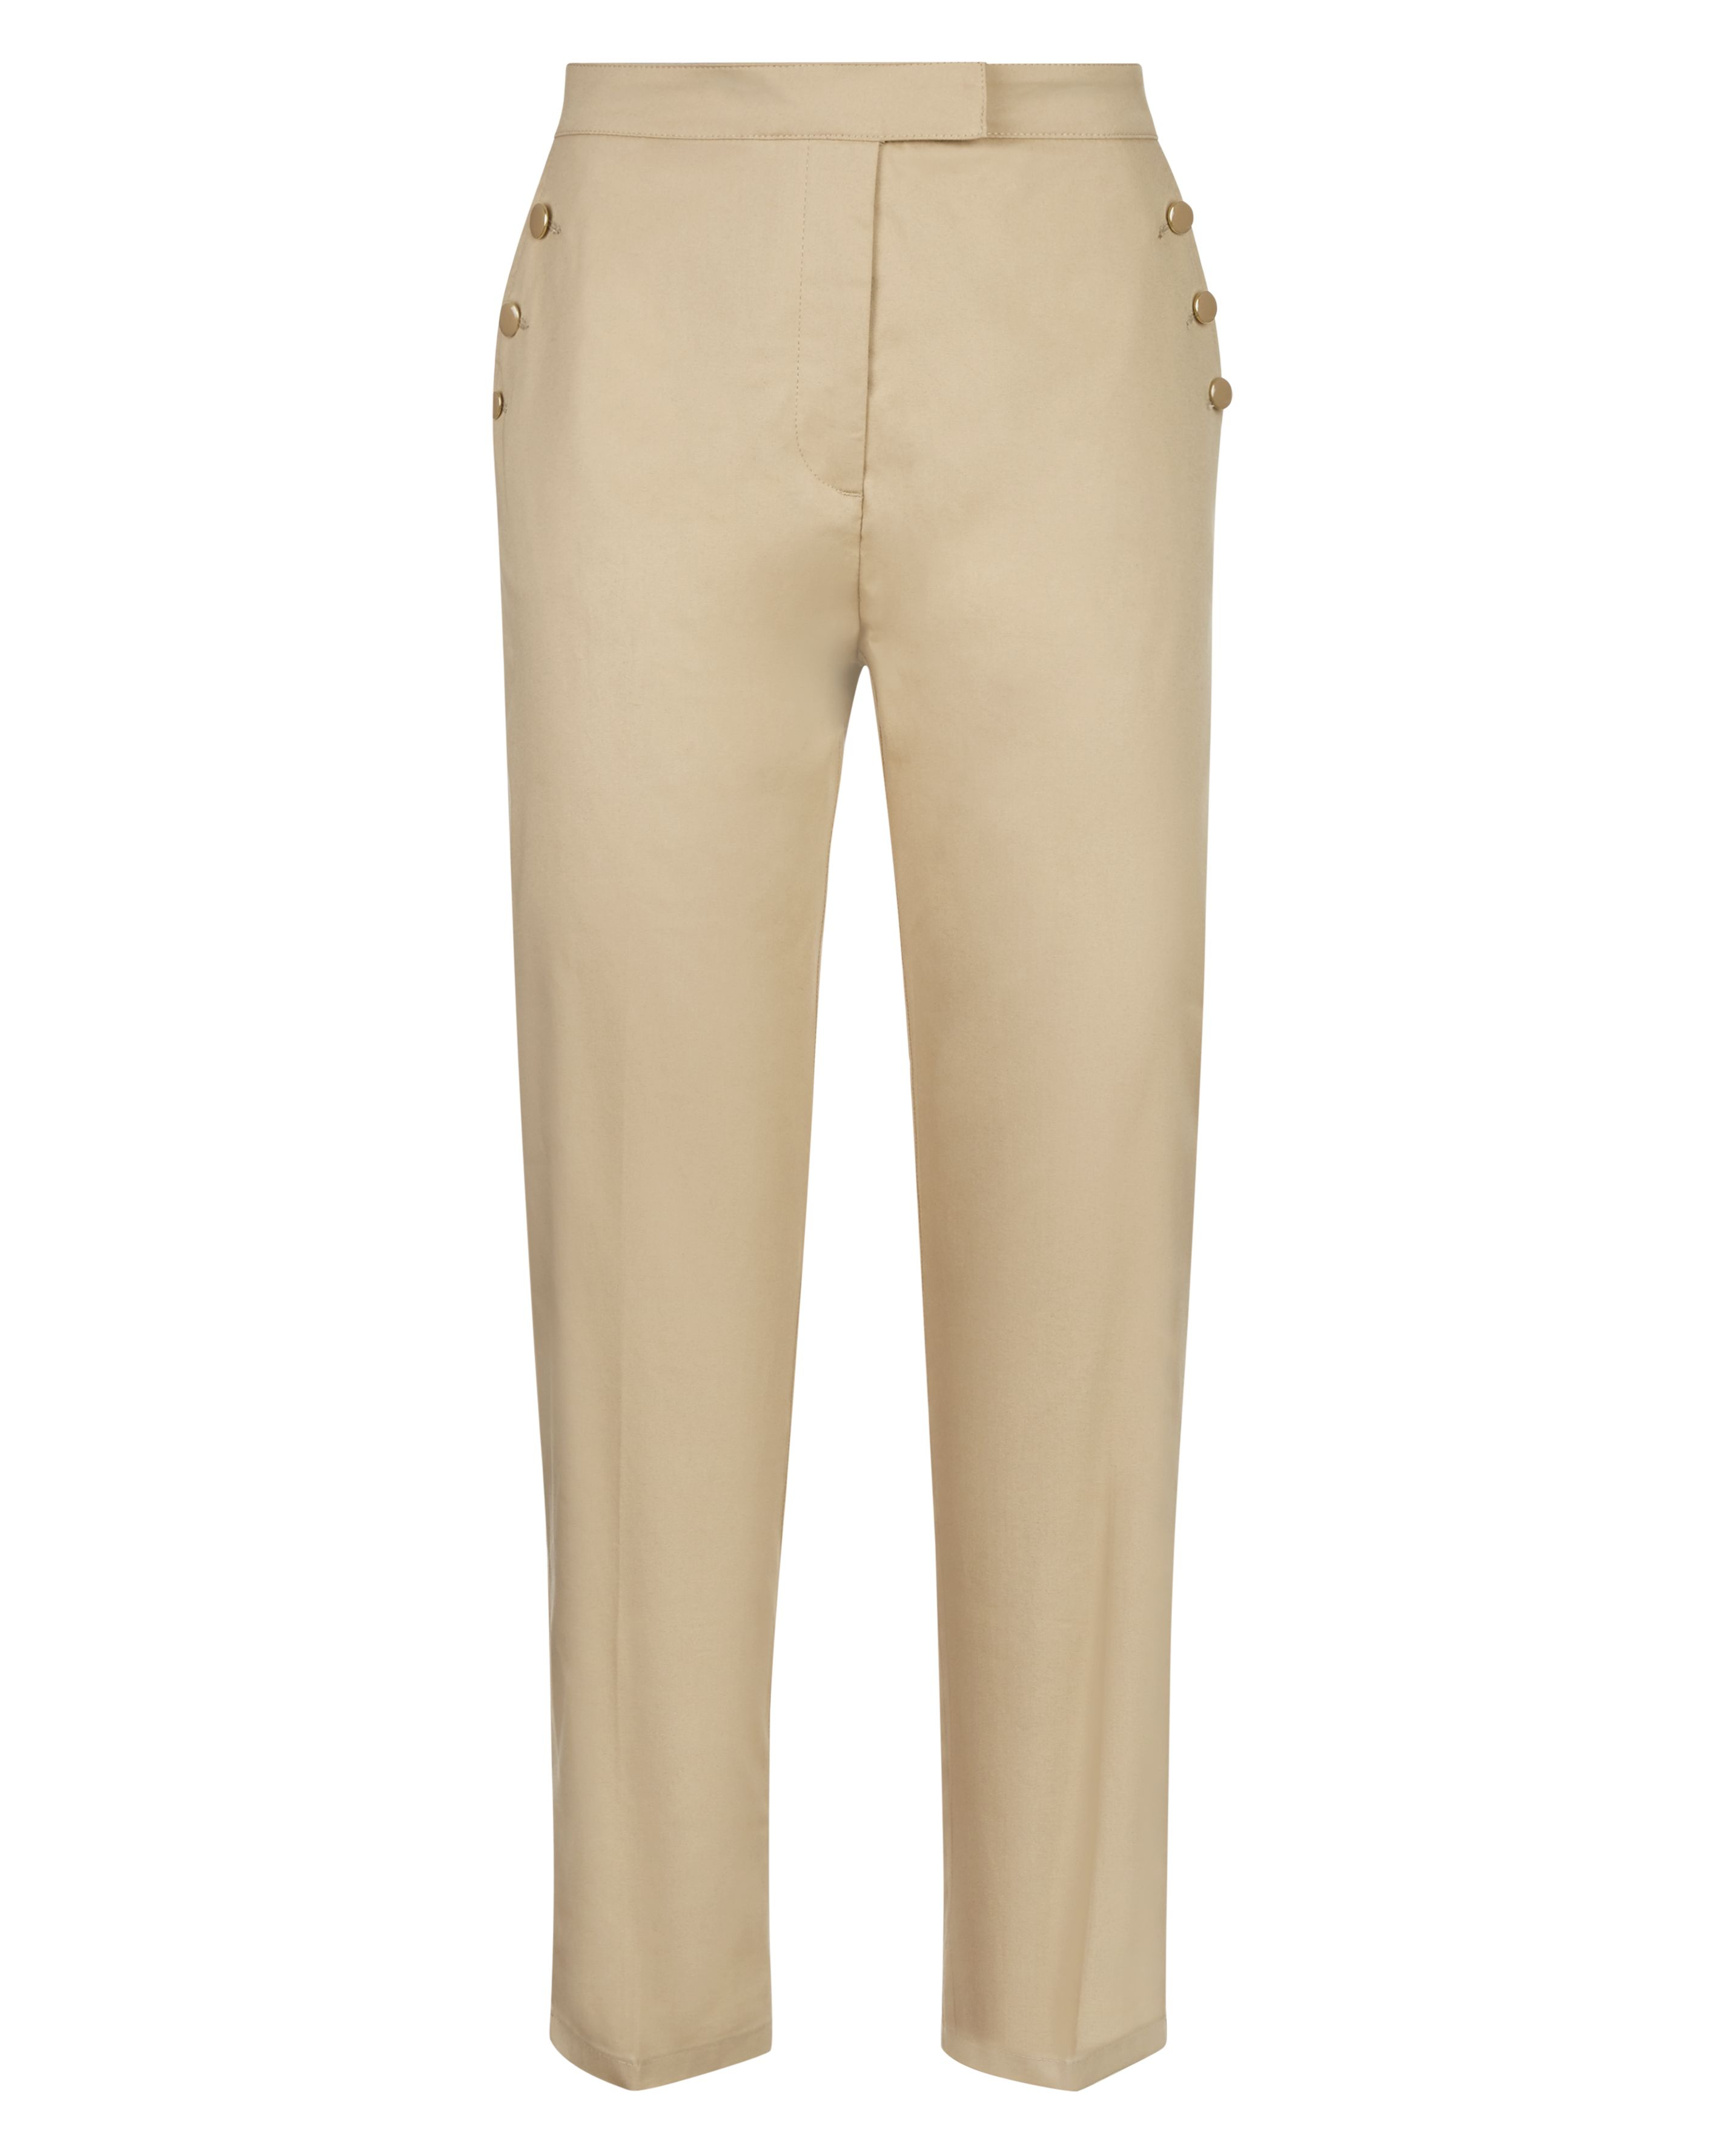 Jaeger Enamel Button Chinos, Stone